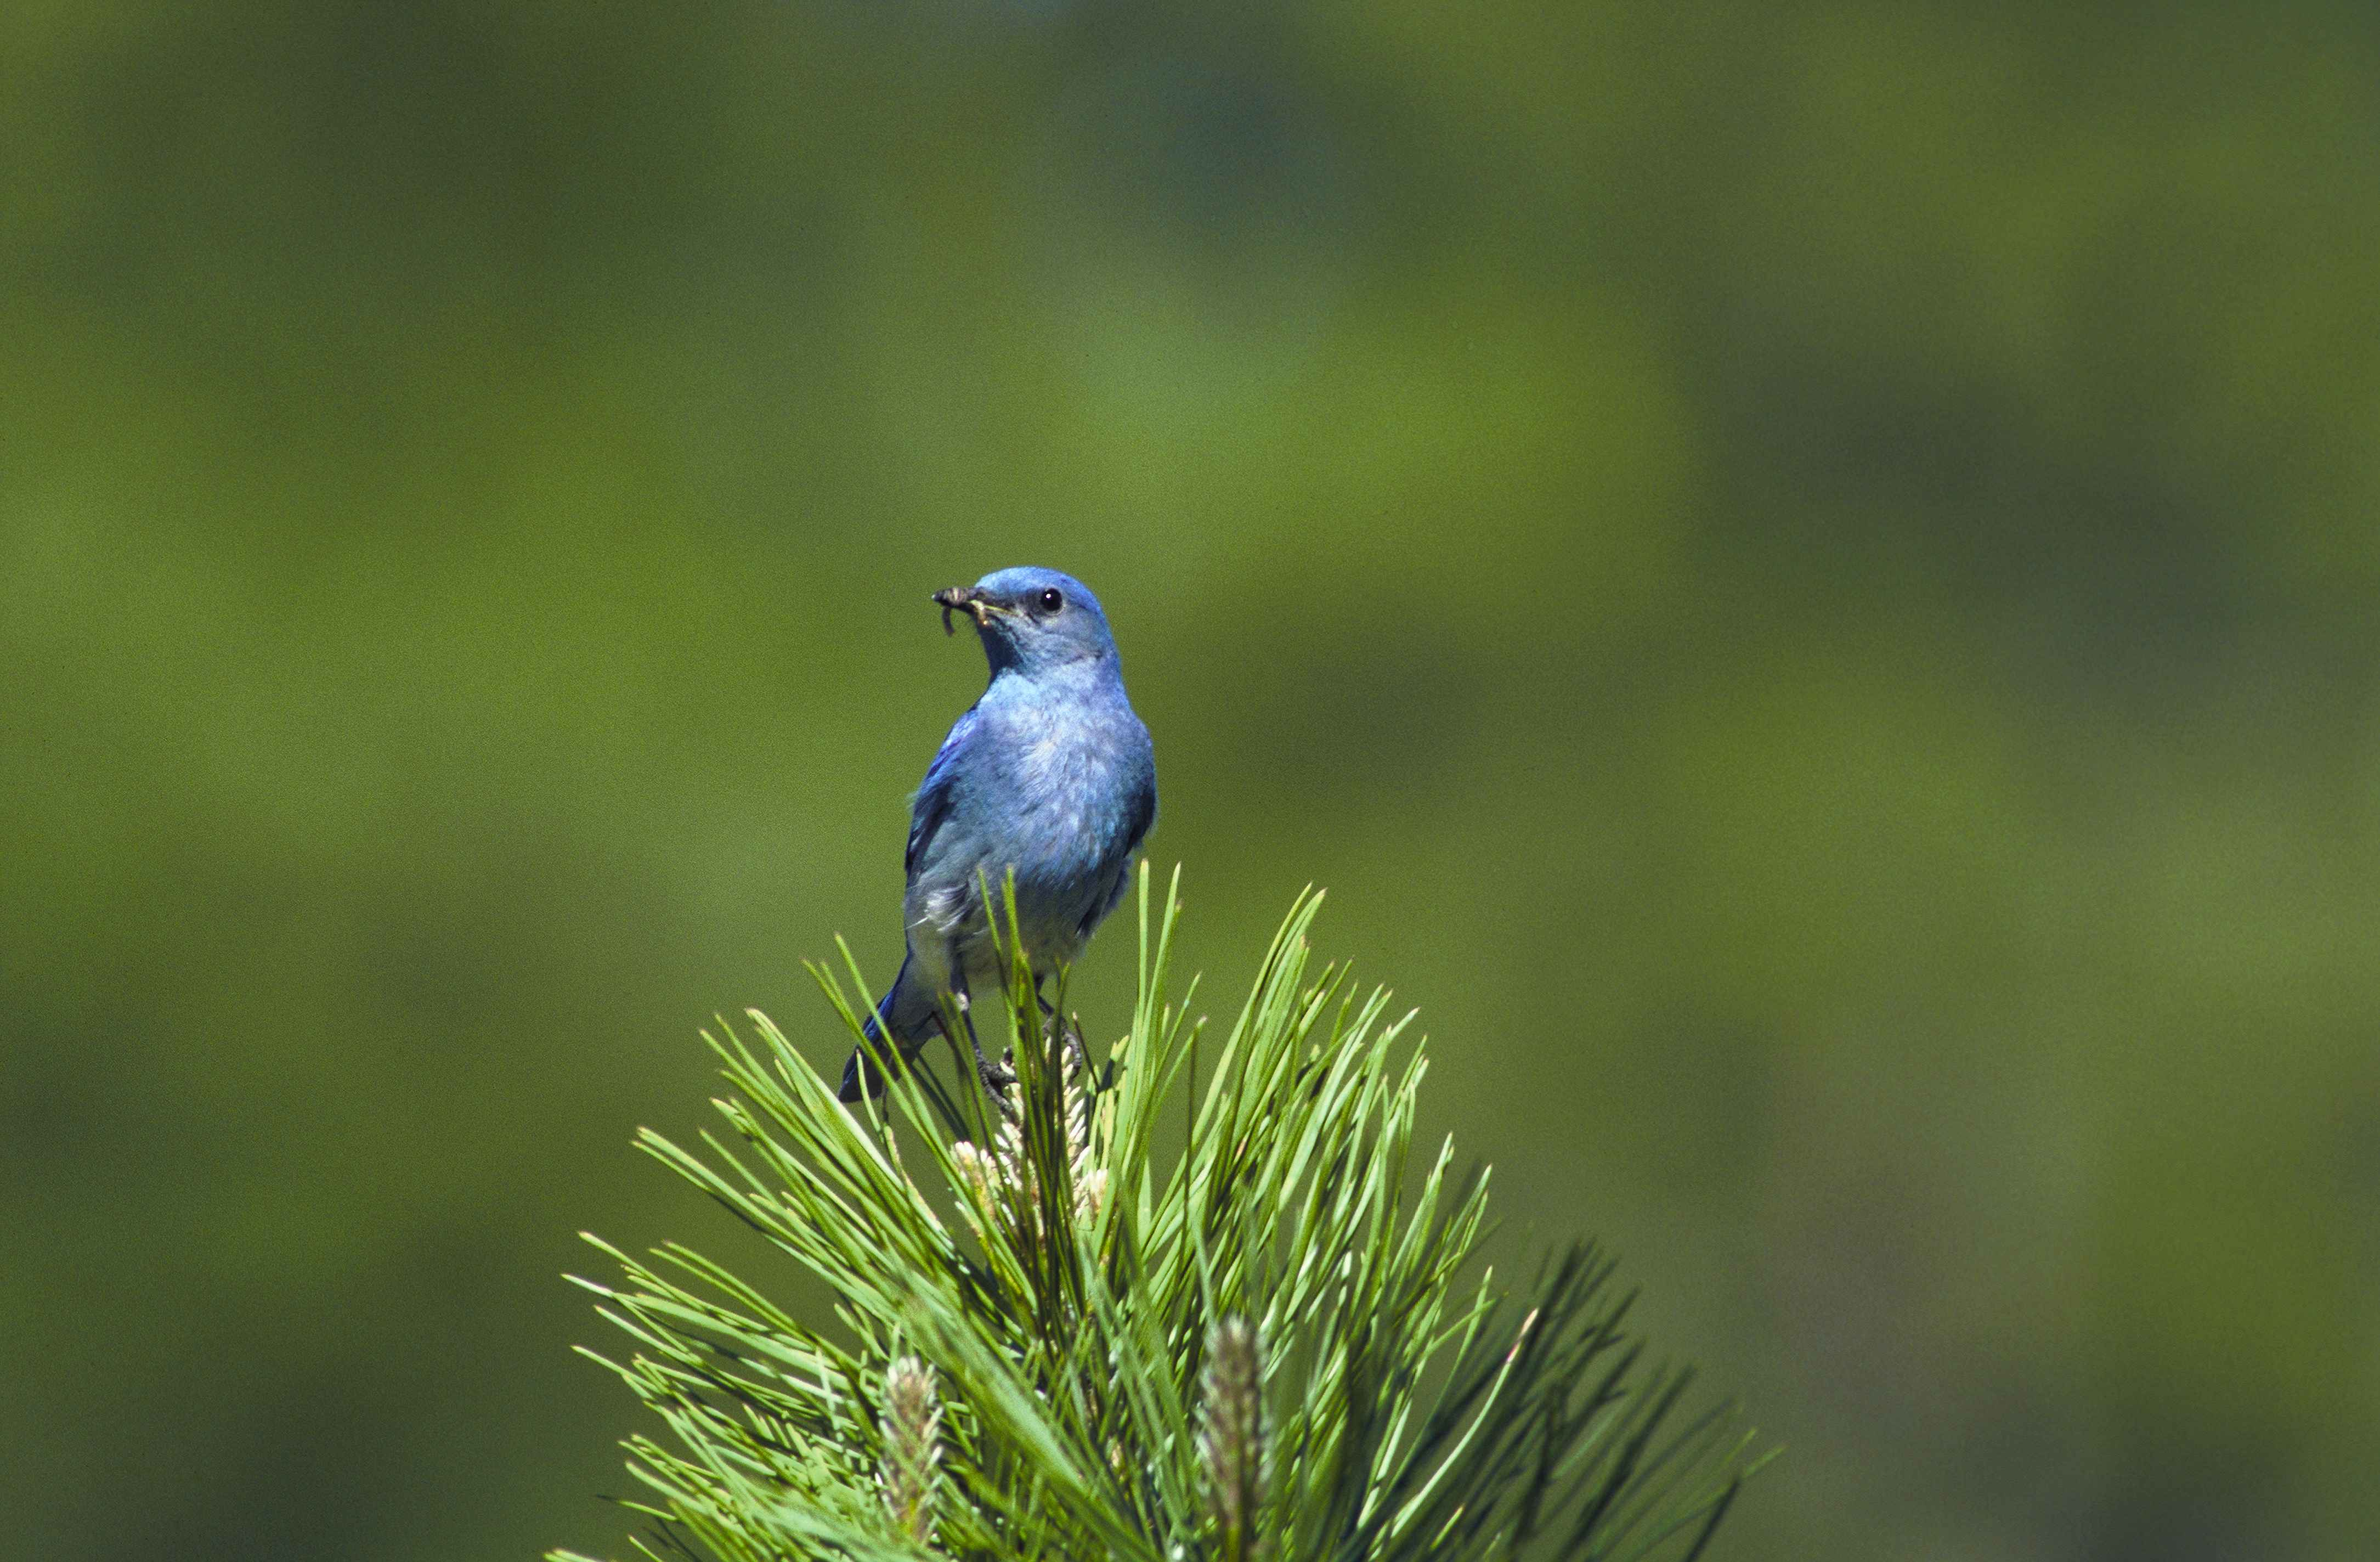 Wallpaper Full Color Hd Free Picture Up Close Mountain Blue Bird Bird Eating